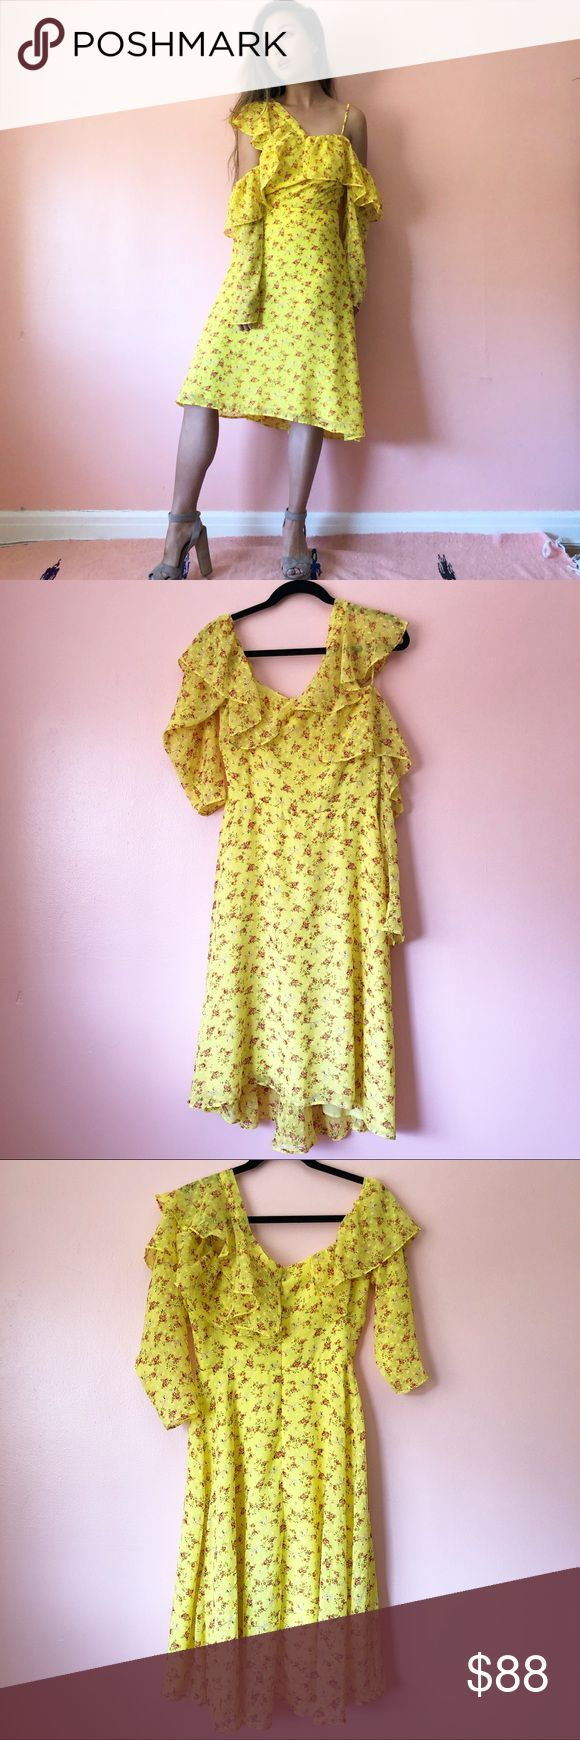 ASOS Yellow Floral Ruffle Midi Dress Sip some lemonade in this yellow floral ruffle midi dress by ASOS. Features an asymmetrical ruffle strap, spaghetti strap, off shoulder ruffle and sleeves, fitted bodice and midi length skirt. Wear with strappy heels or boots. Fits true to US 6. Pinned on model to show fit. No returns allowed. Please ask all questions before buying. Follow IG: [at] jacqueline.pak for sneak peeks, first dibs, giveaways and discount codes. #asos ASOS Dresses Midi